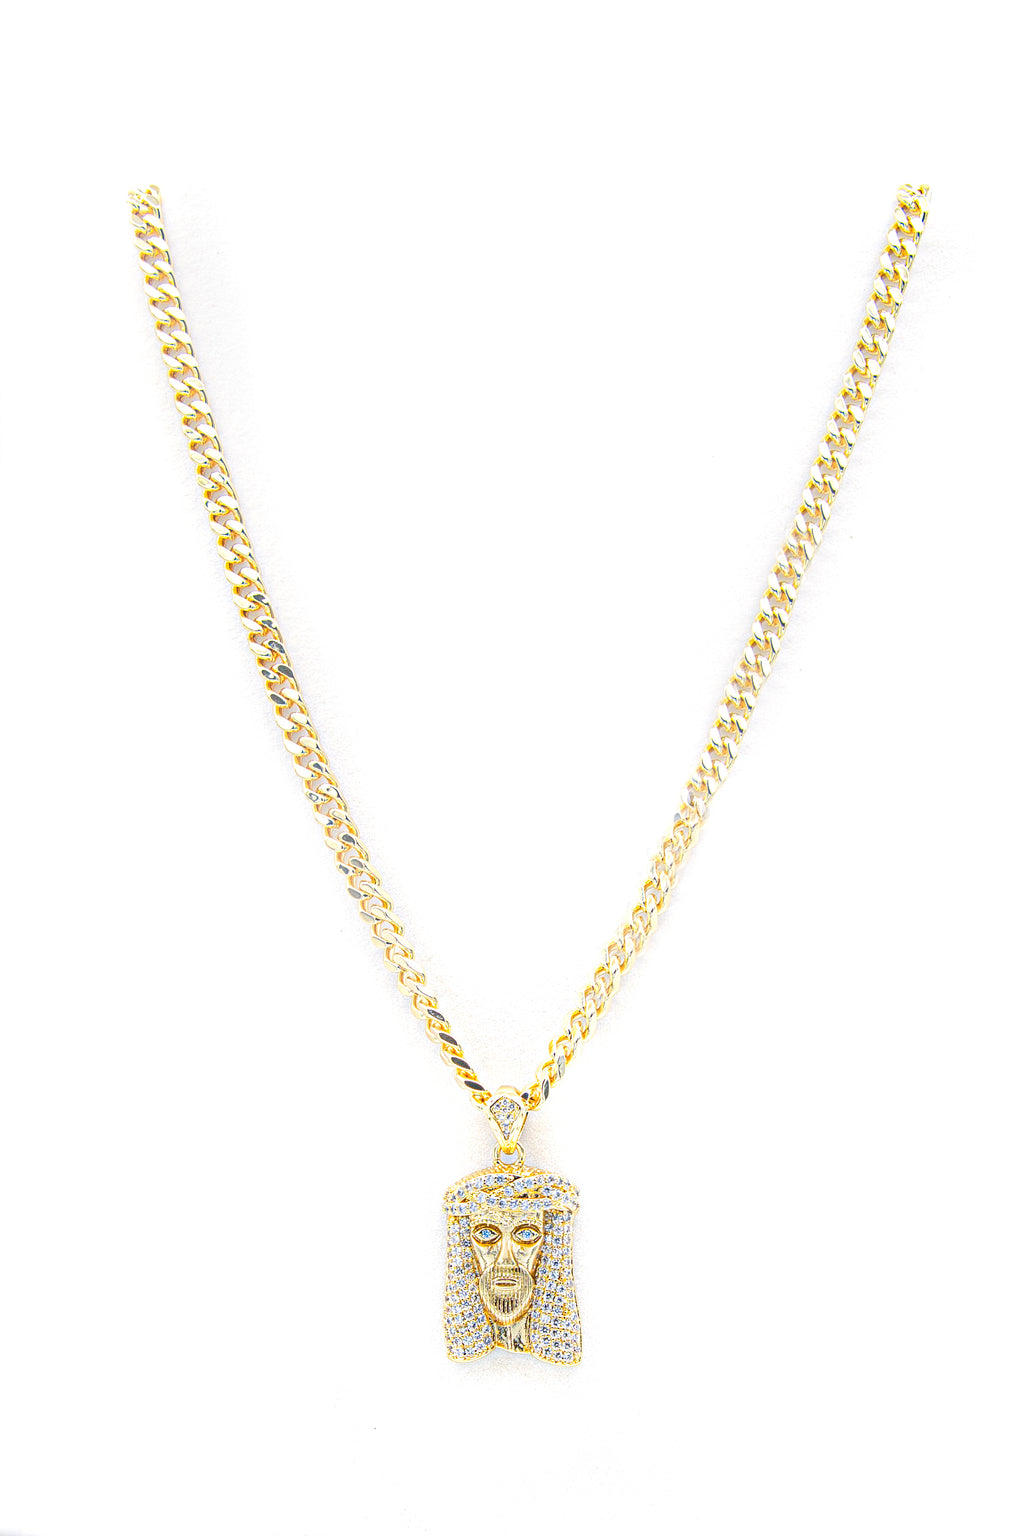 "<img src=""IMG_9958.JPG"" alt=""Stainless-steel-gold-jesus-head-pendant-necklace-30''-cuban-chain"">"